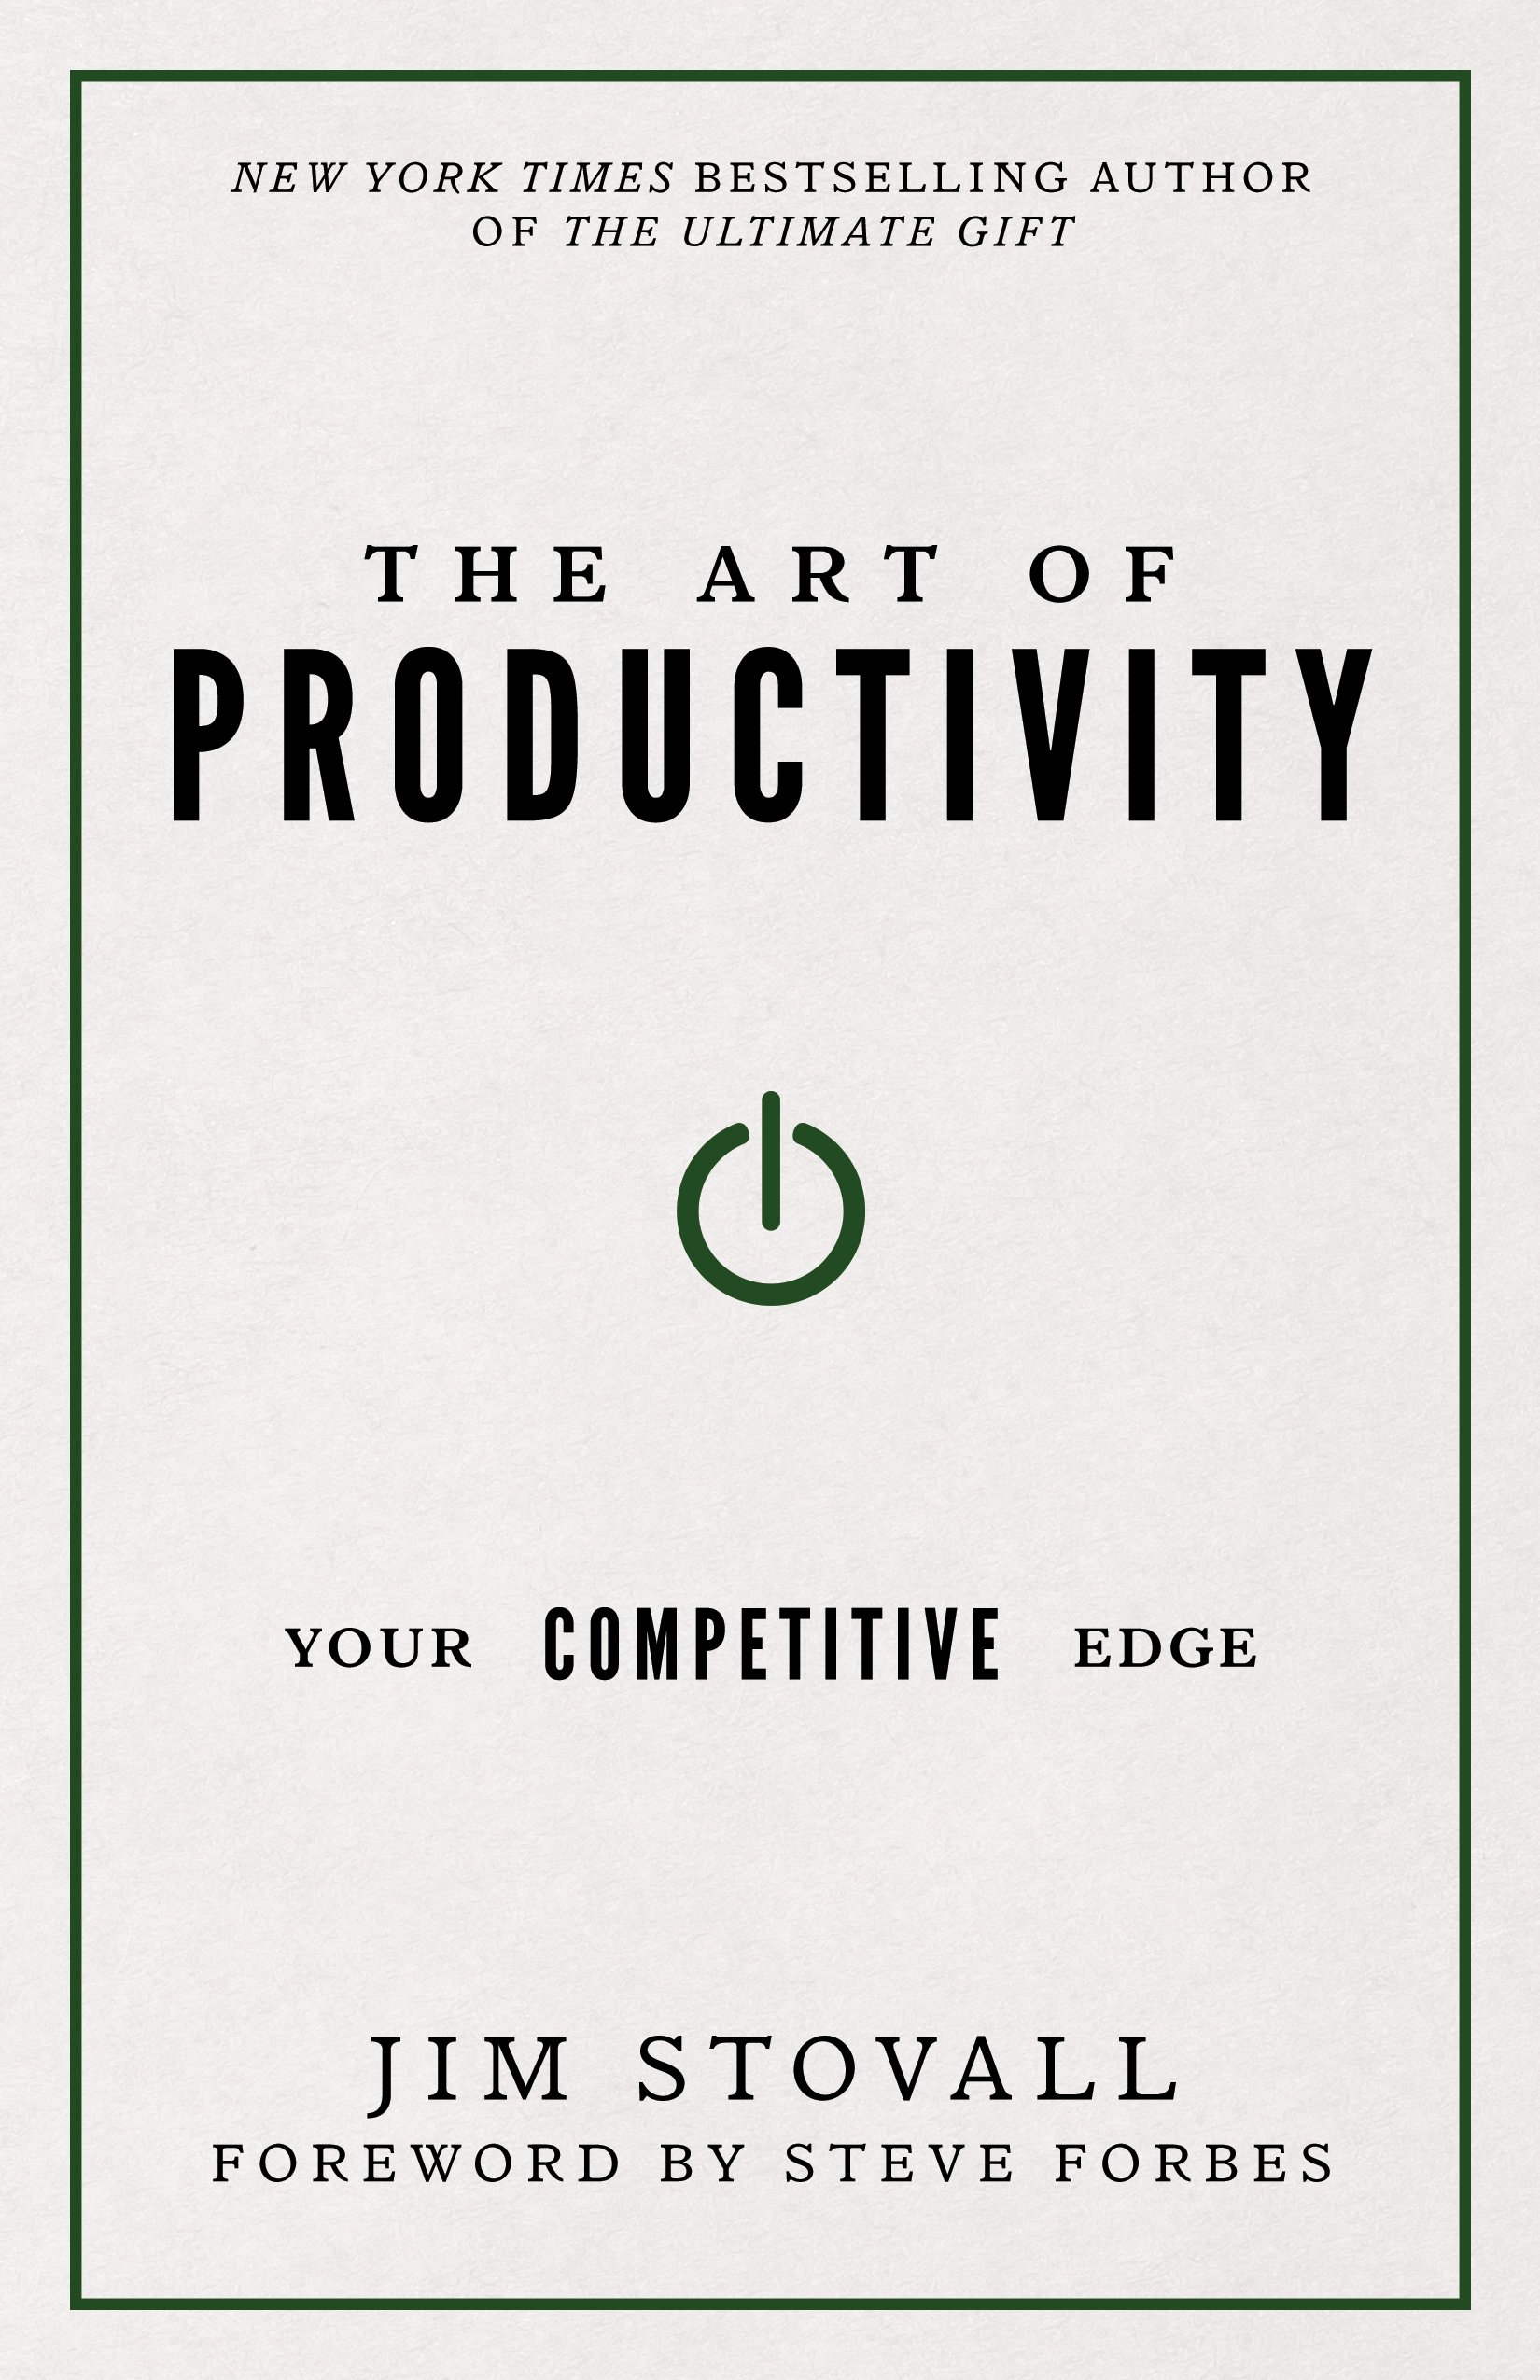 The Art of Productivity: Your Competitive Edge (Your Competitive Edge Series) (Your Ultimate Guide) pdf epub